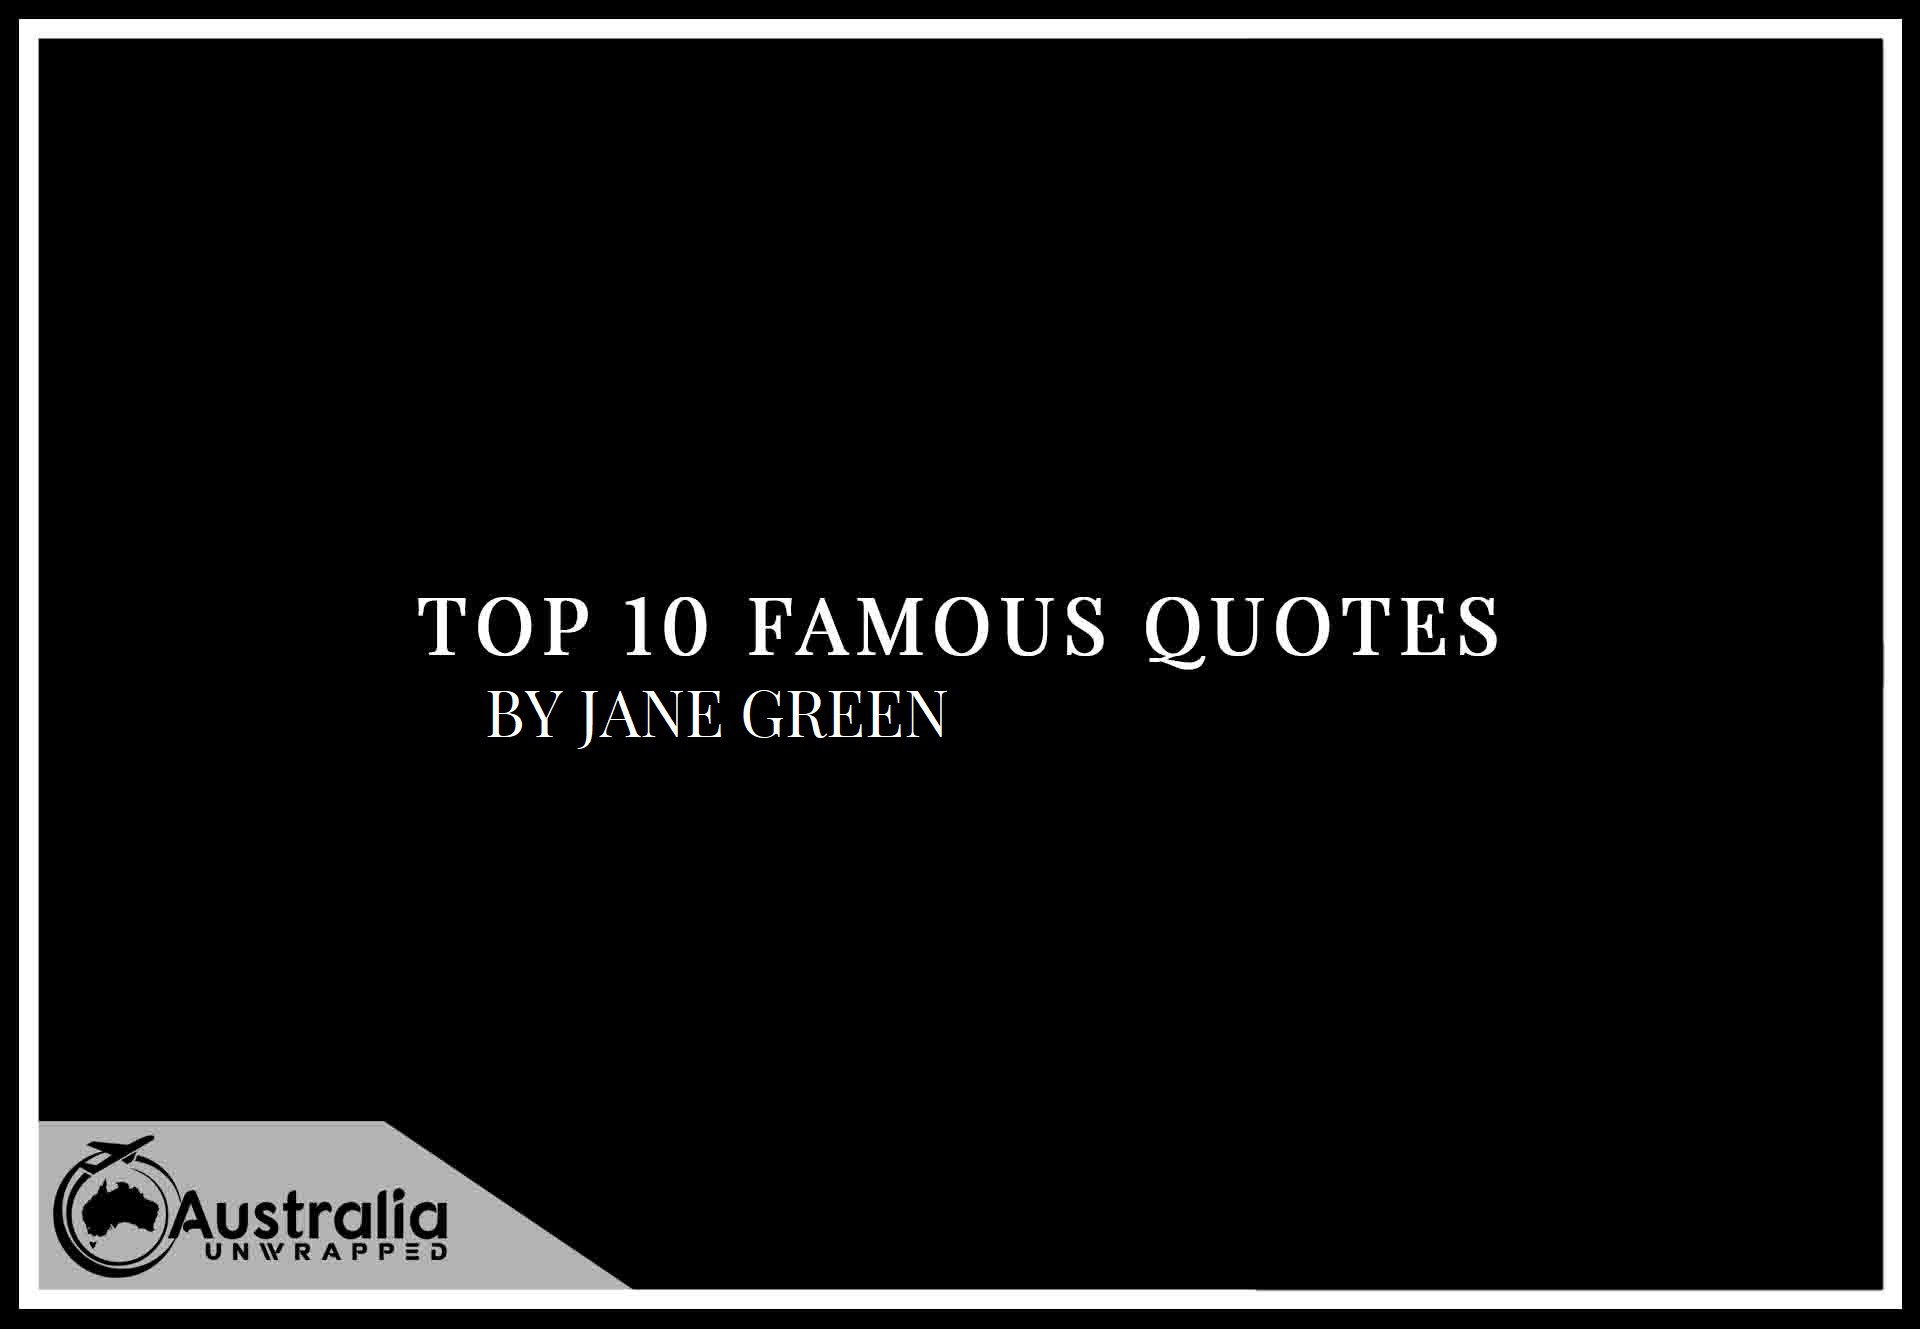 Top 10 Famous Quotes by Author Jane Green